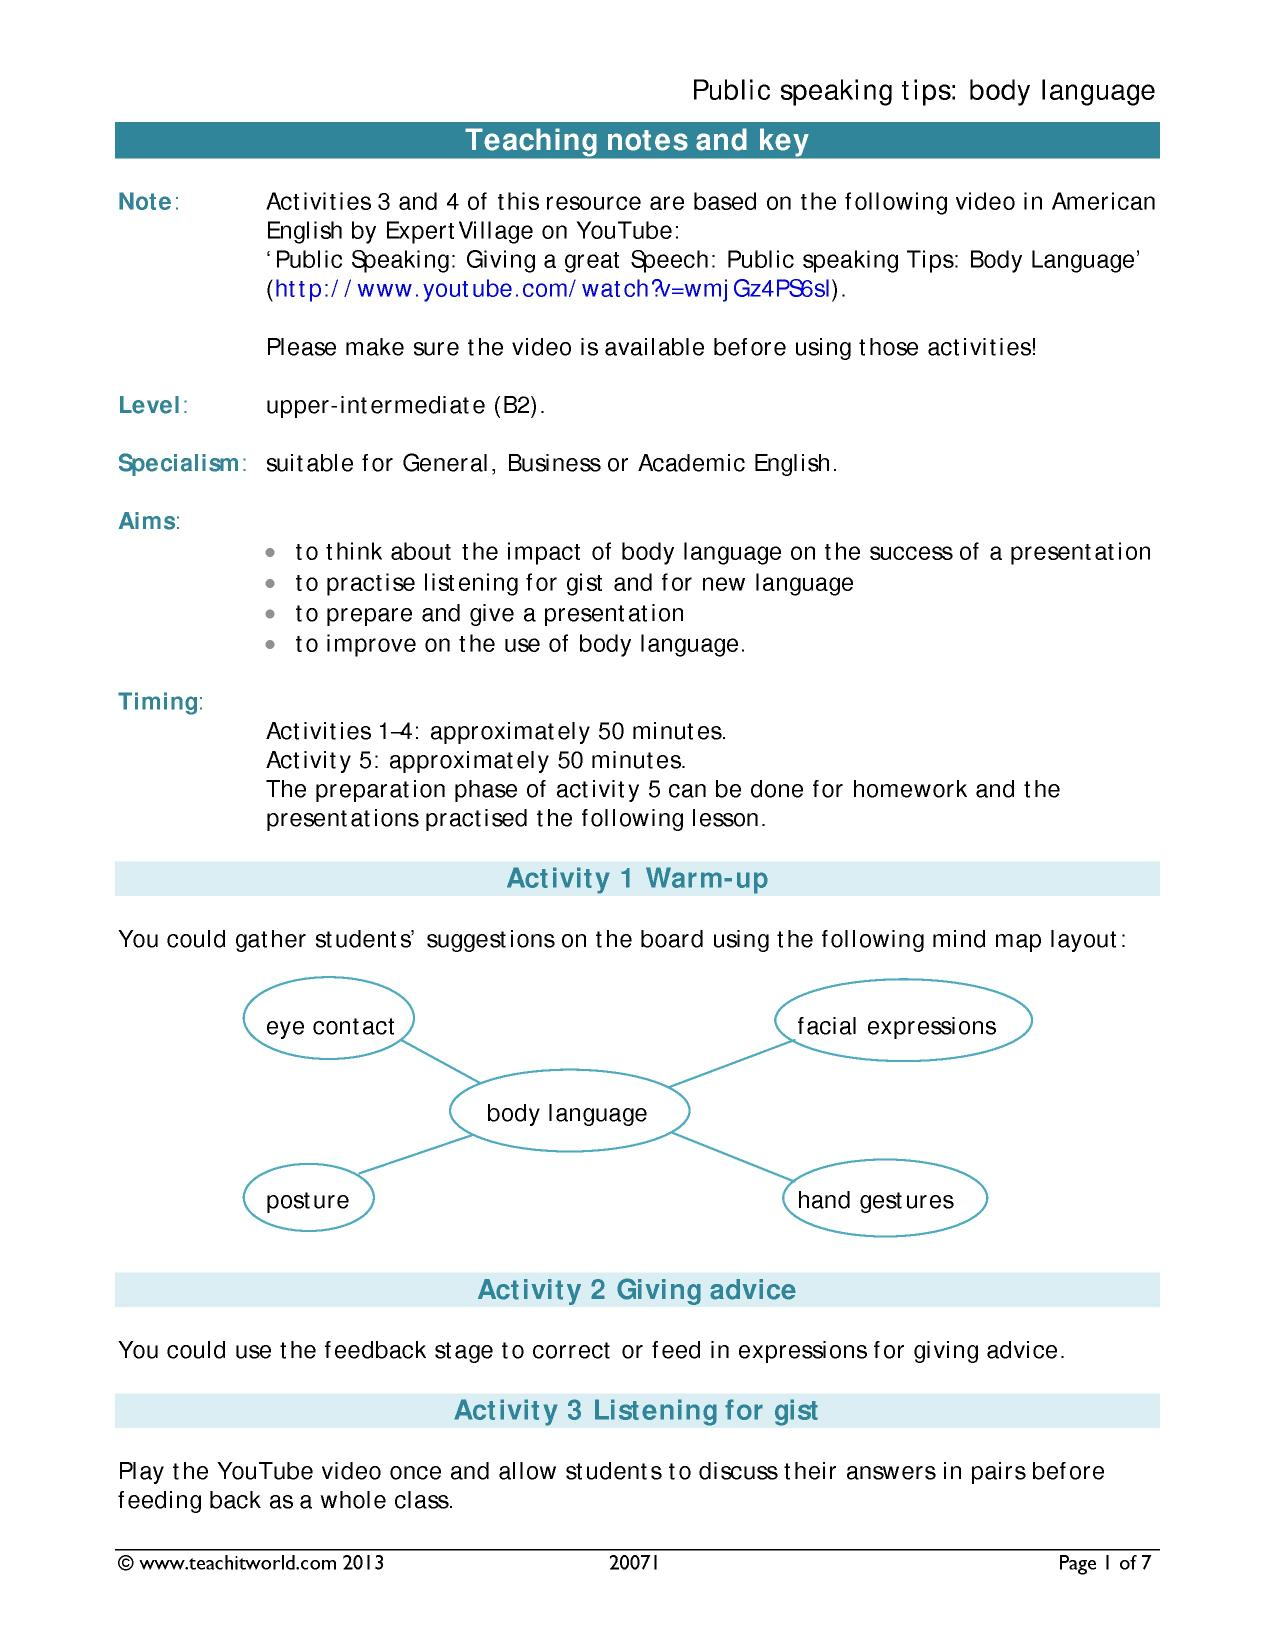 Teaching resources for English as an Additional Language (EAL